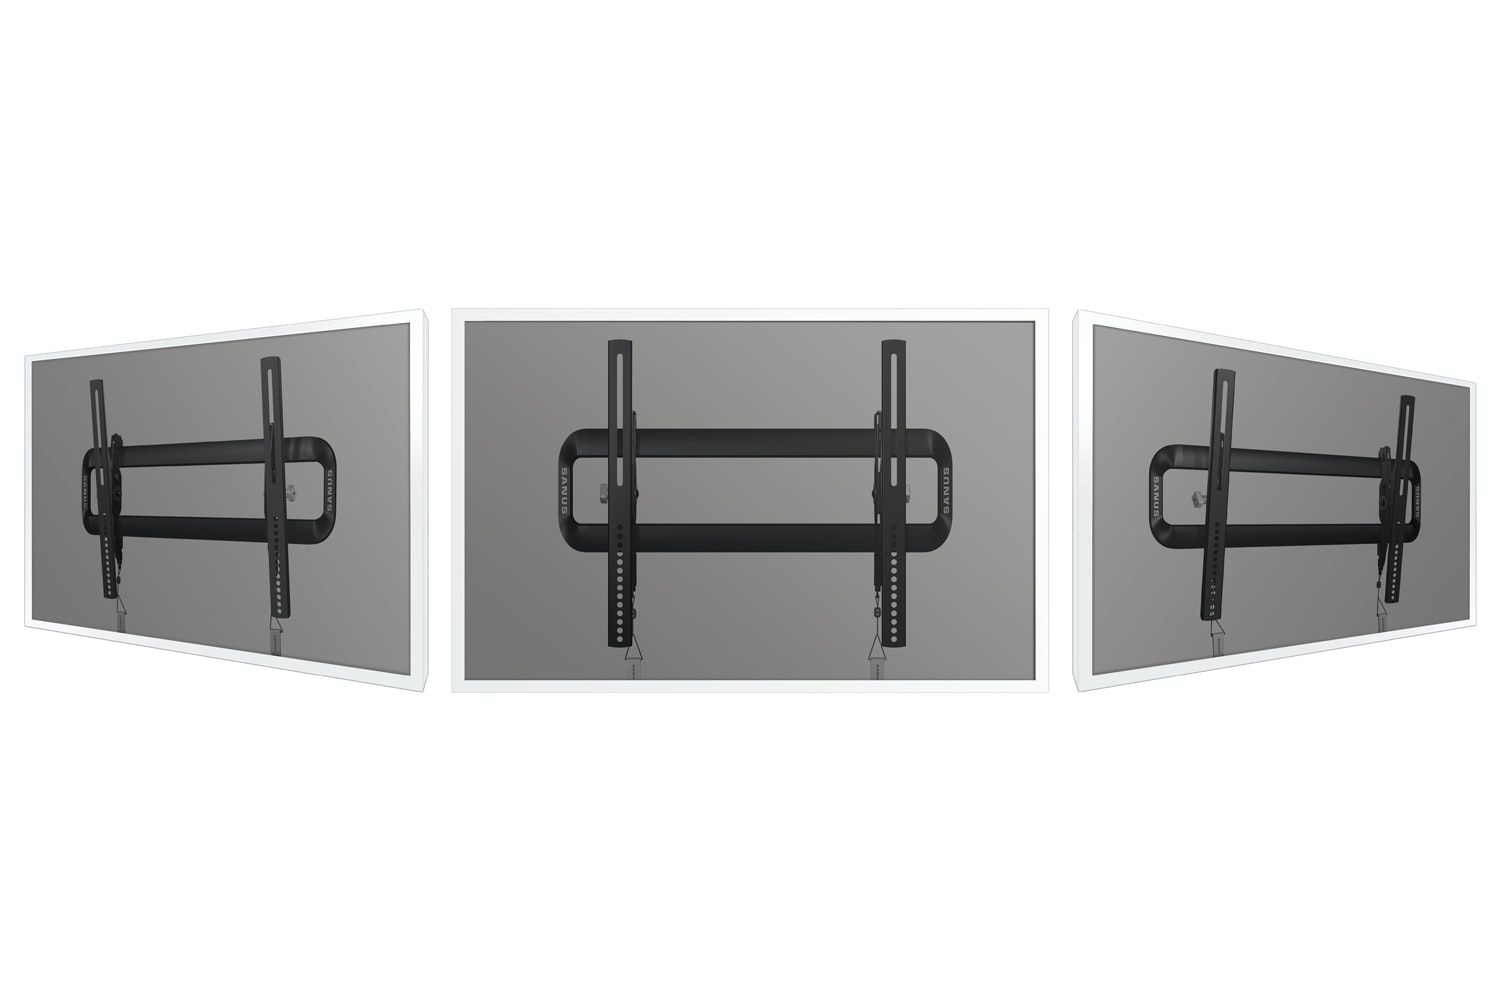 "Sanus Premium Series Tilt Mount For 40"" - 50"" Flat Panel TVs 